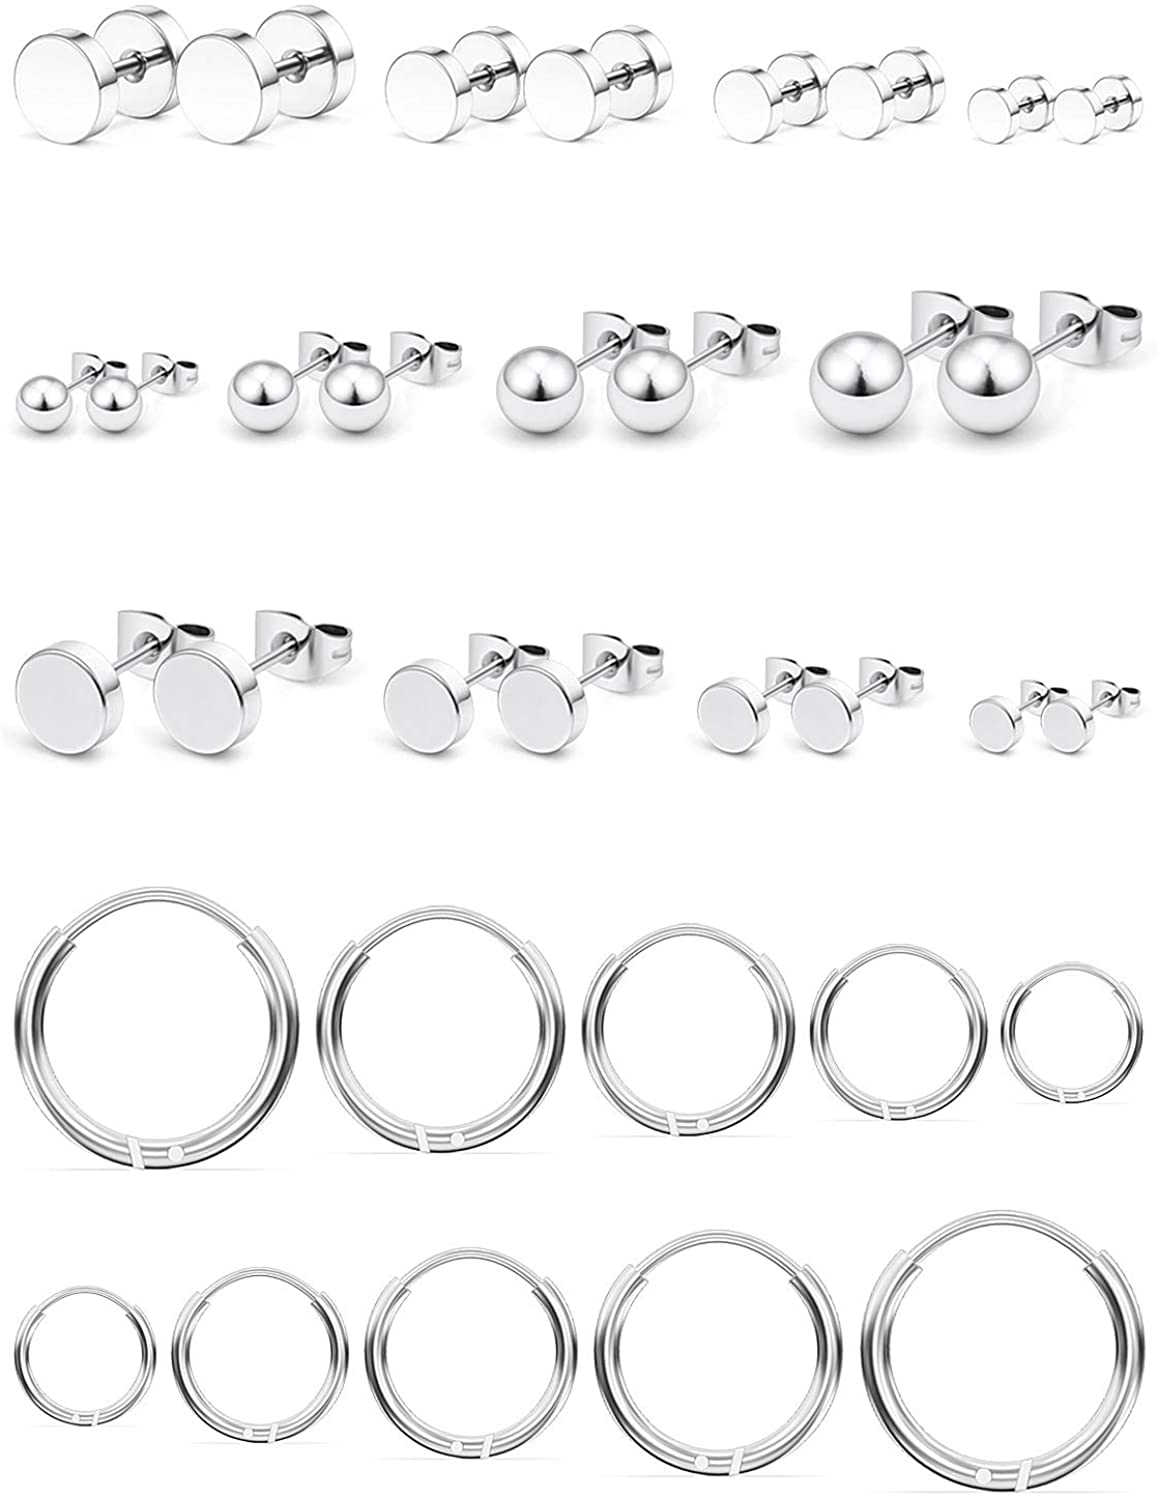 Cisyozi 4-17 Pairs 18G Mix Color Stainless Steel Mens Womens Stud Earrings Cartilage Ear Piercings Helix Tragus Barbell Plugs Tunnel 3-6mm